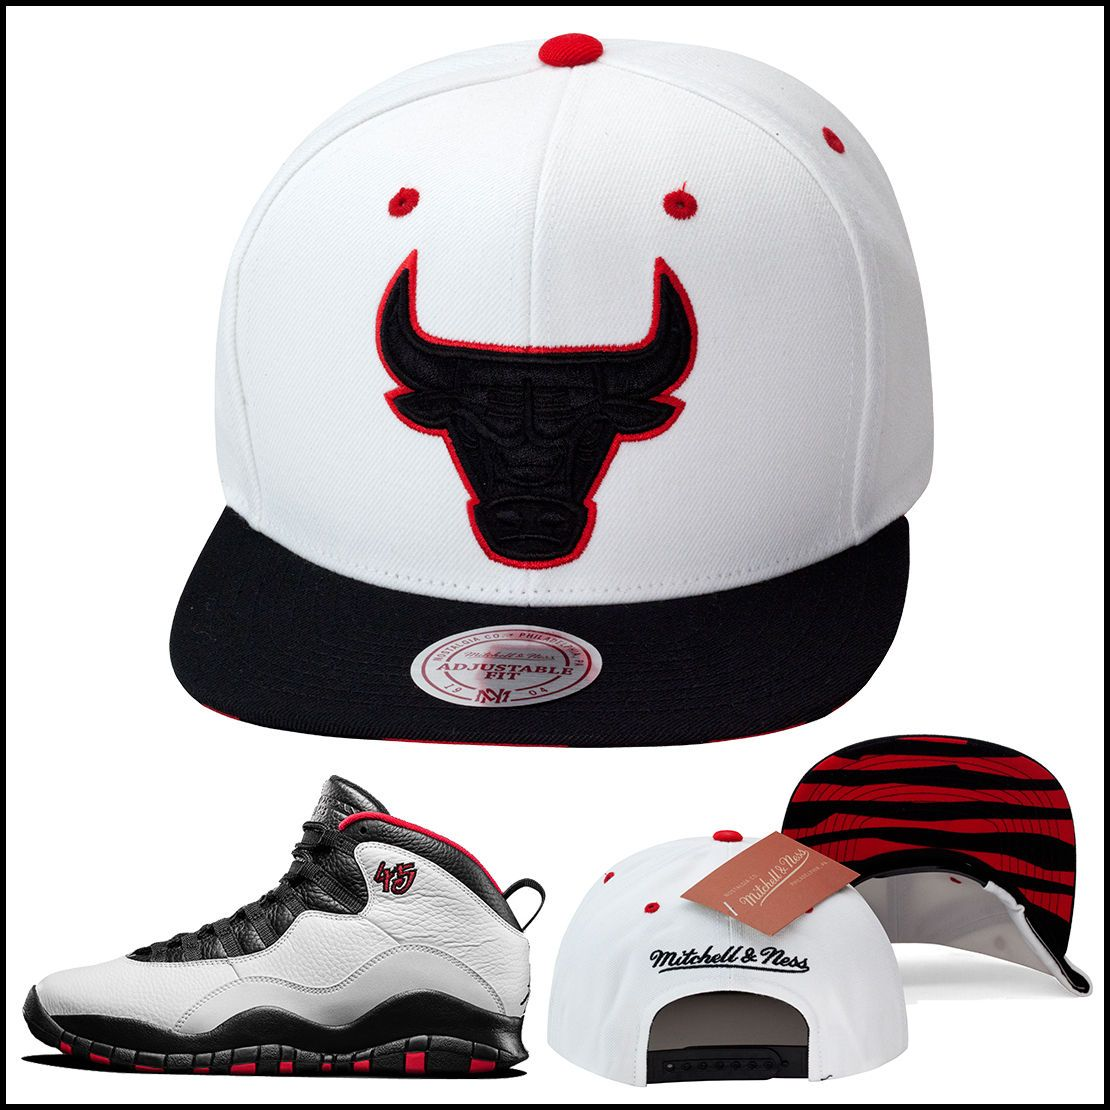 1449233e Mitchell & Ness Chicago Bulls Snapback Hat For Jordan 10 X Retro